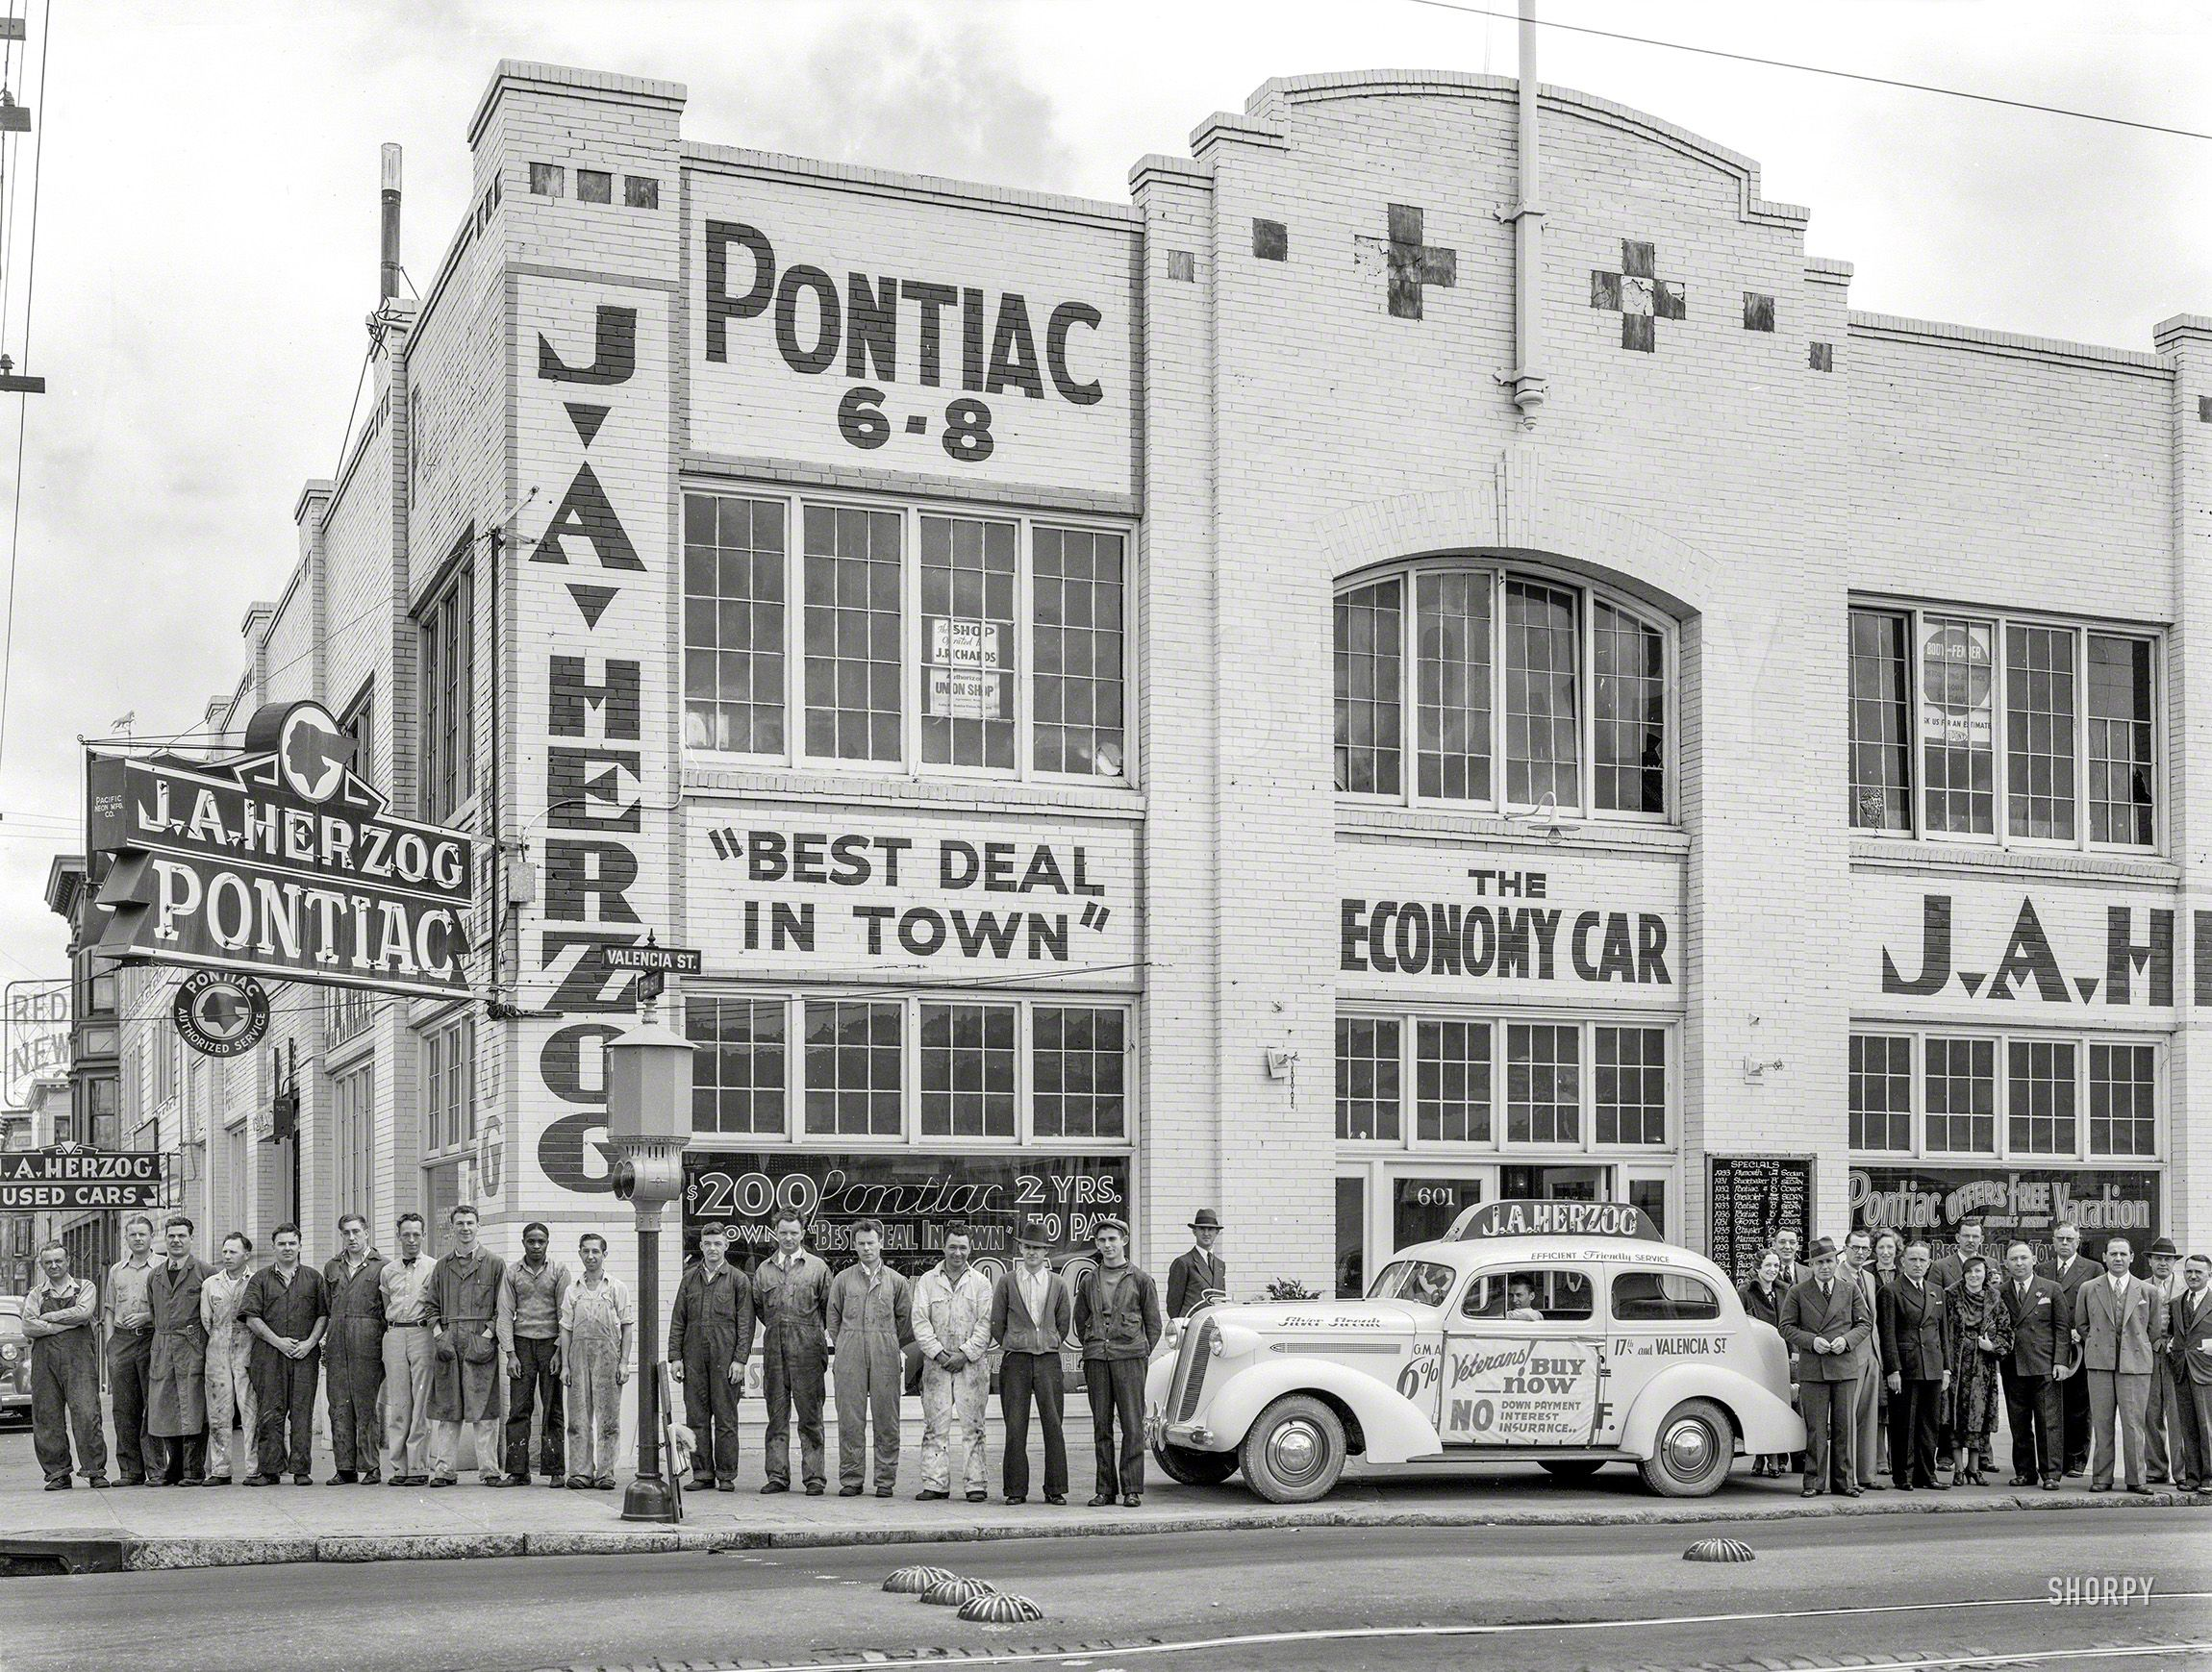 Best Deal In Town June 3 1936 J A Herzog Pontiac 17th